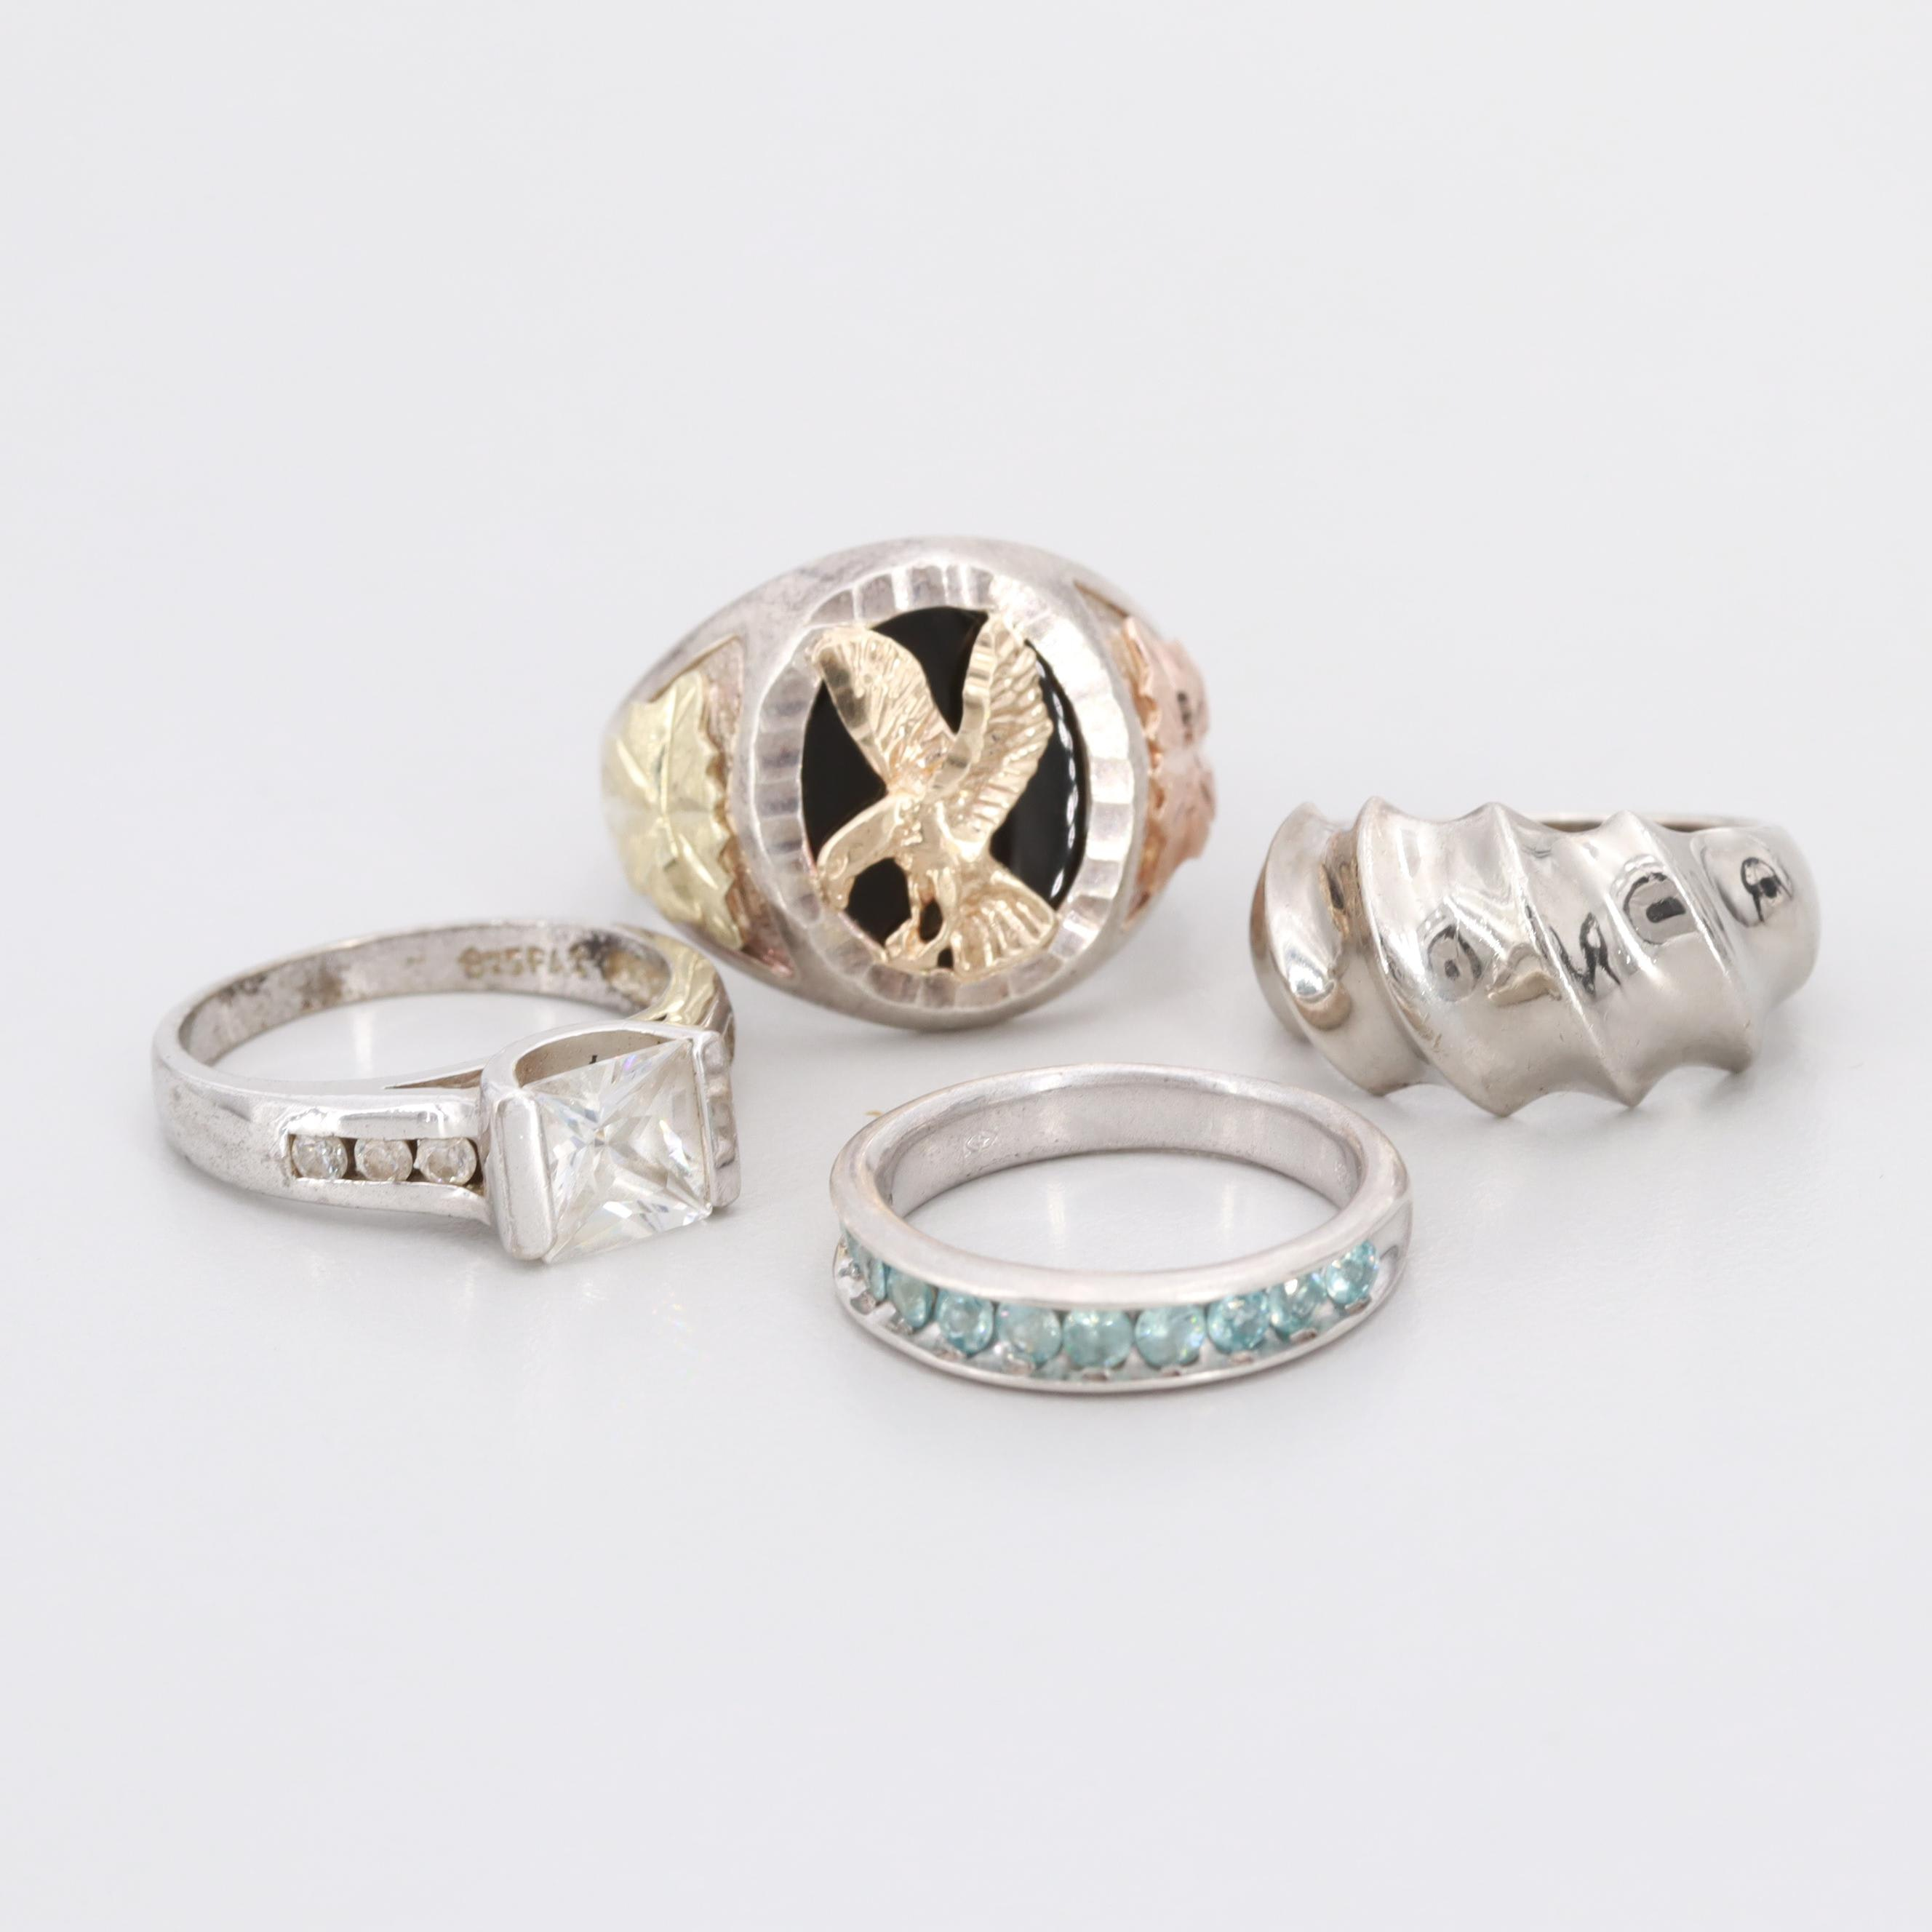 Sterling Synthetic Spinel, Onyx, and Cubic Zirconia Rings Featuring 10K Accents